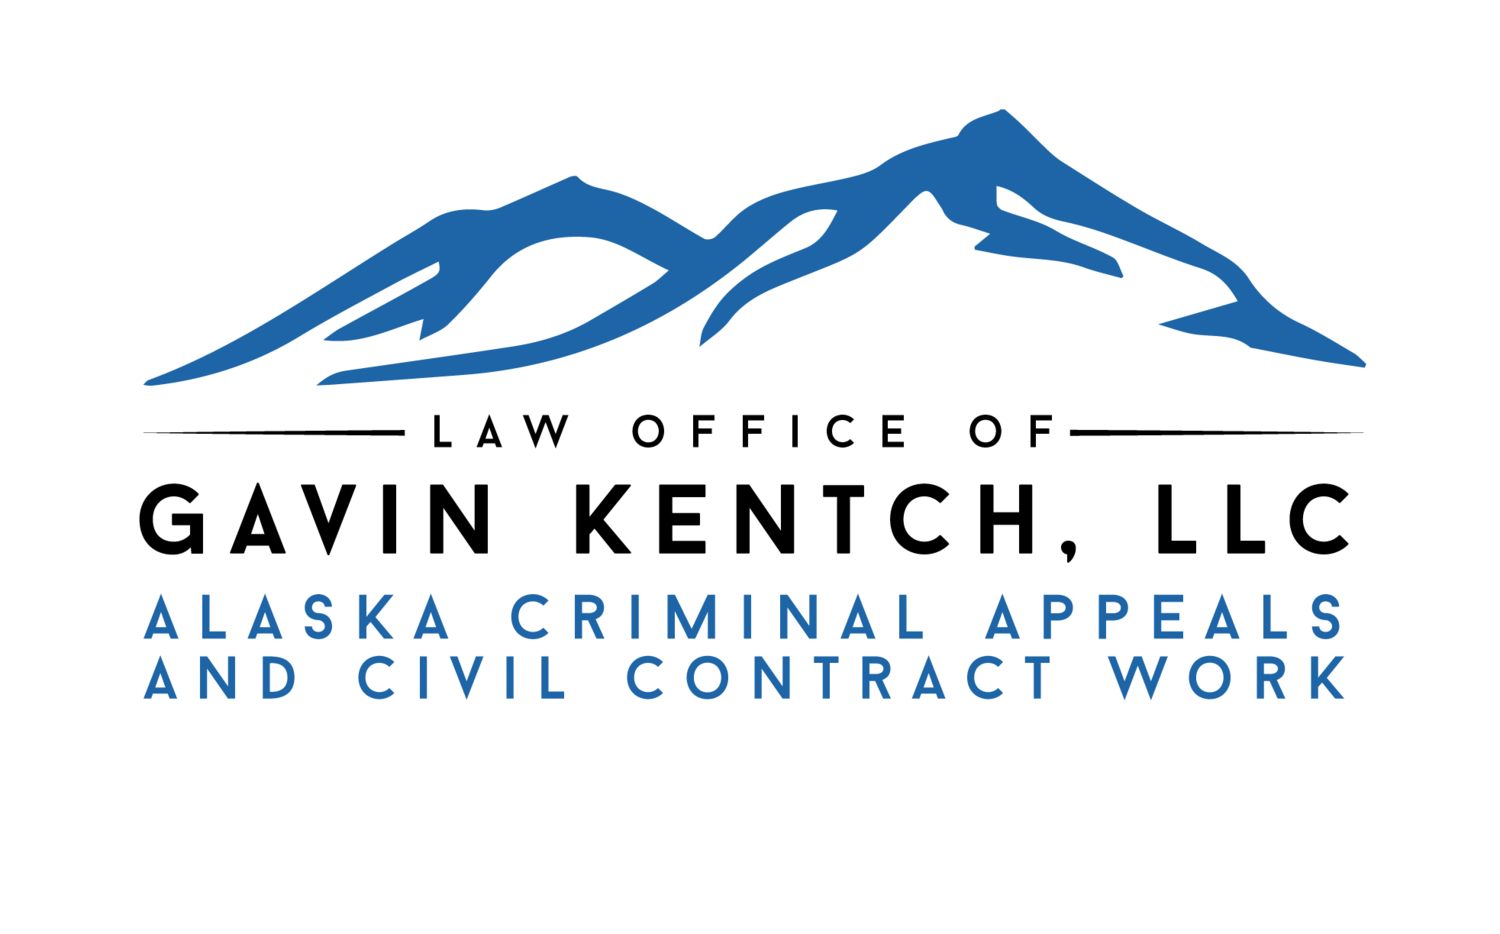 Law Office of Gavin Kentch